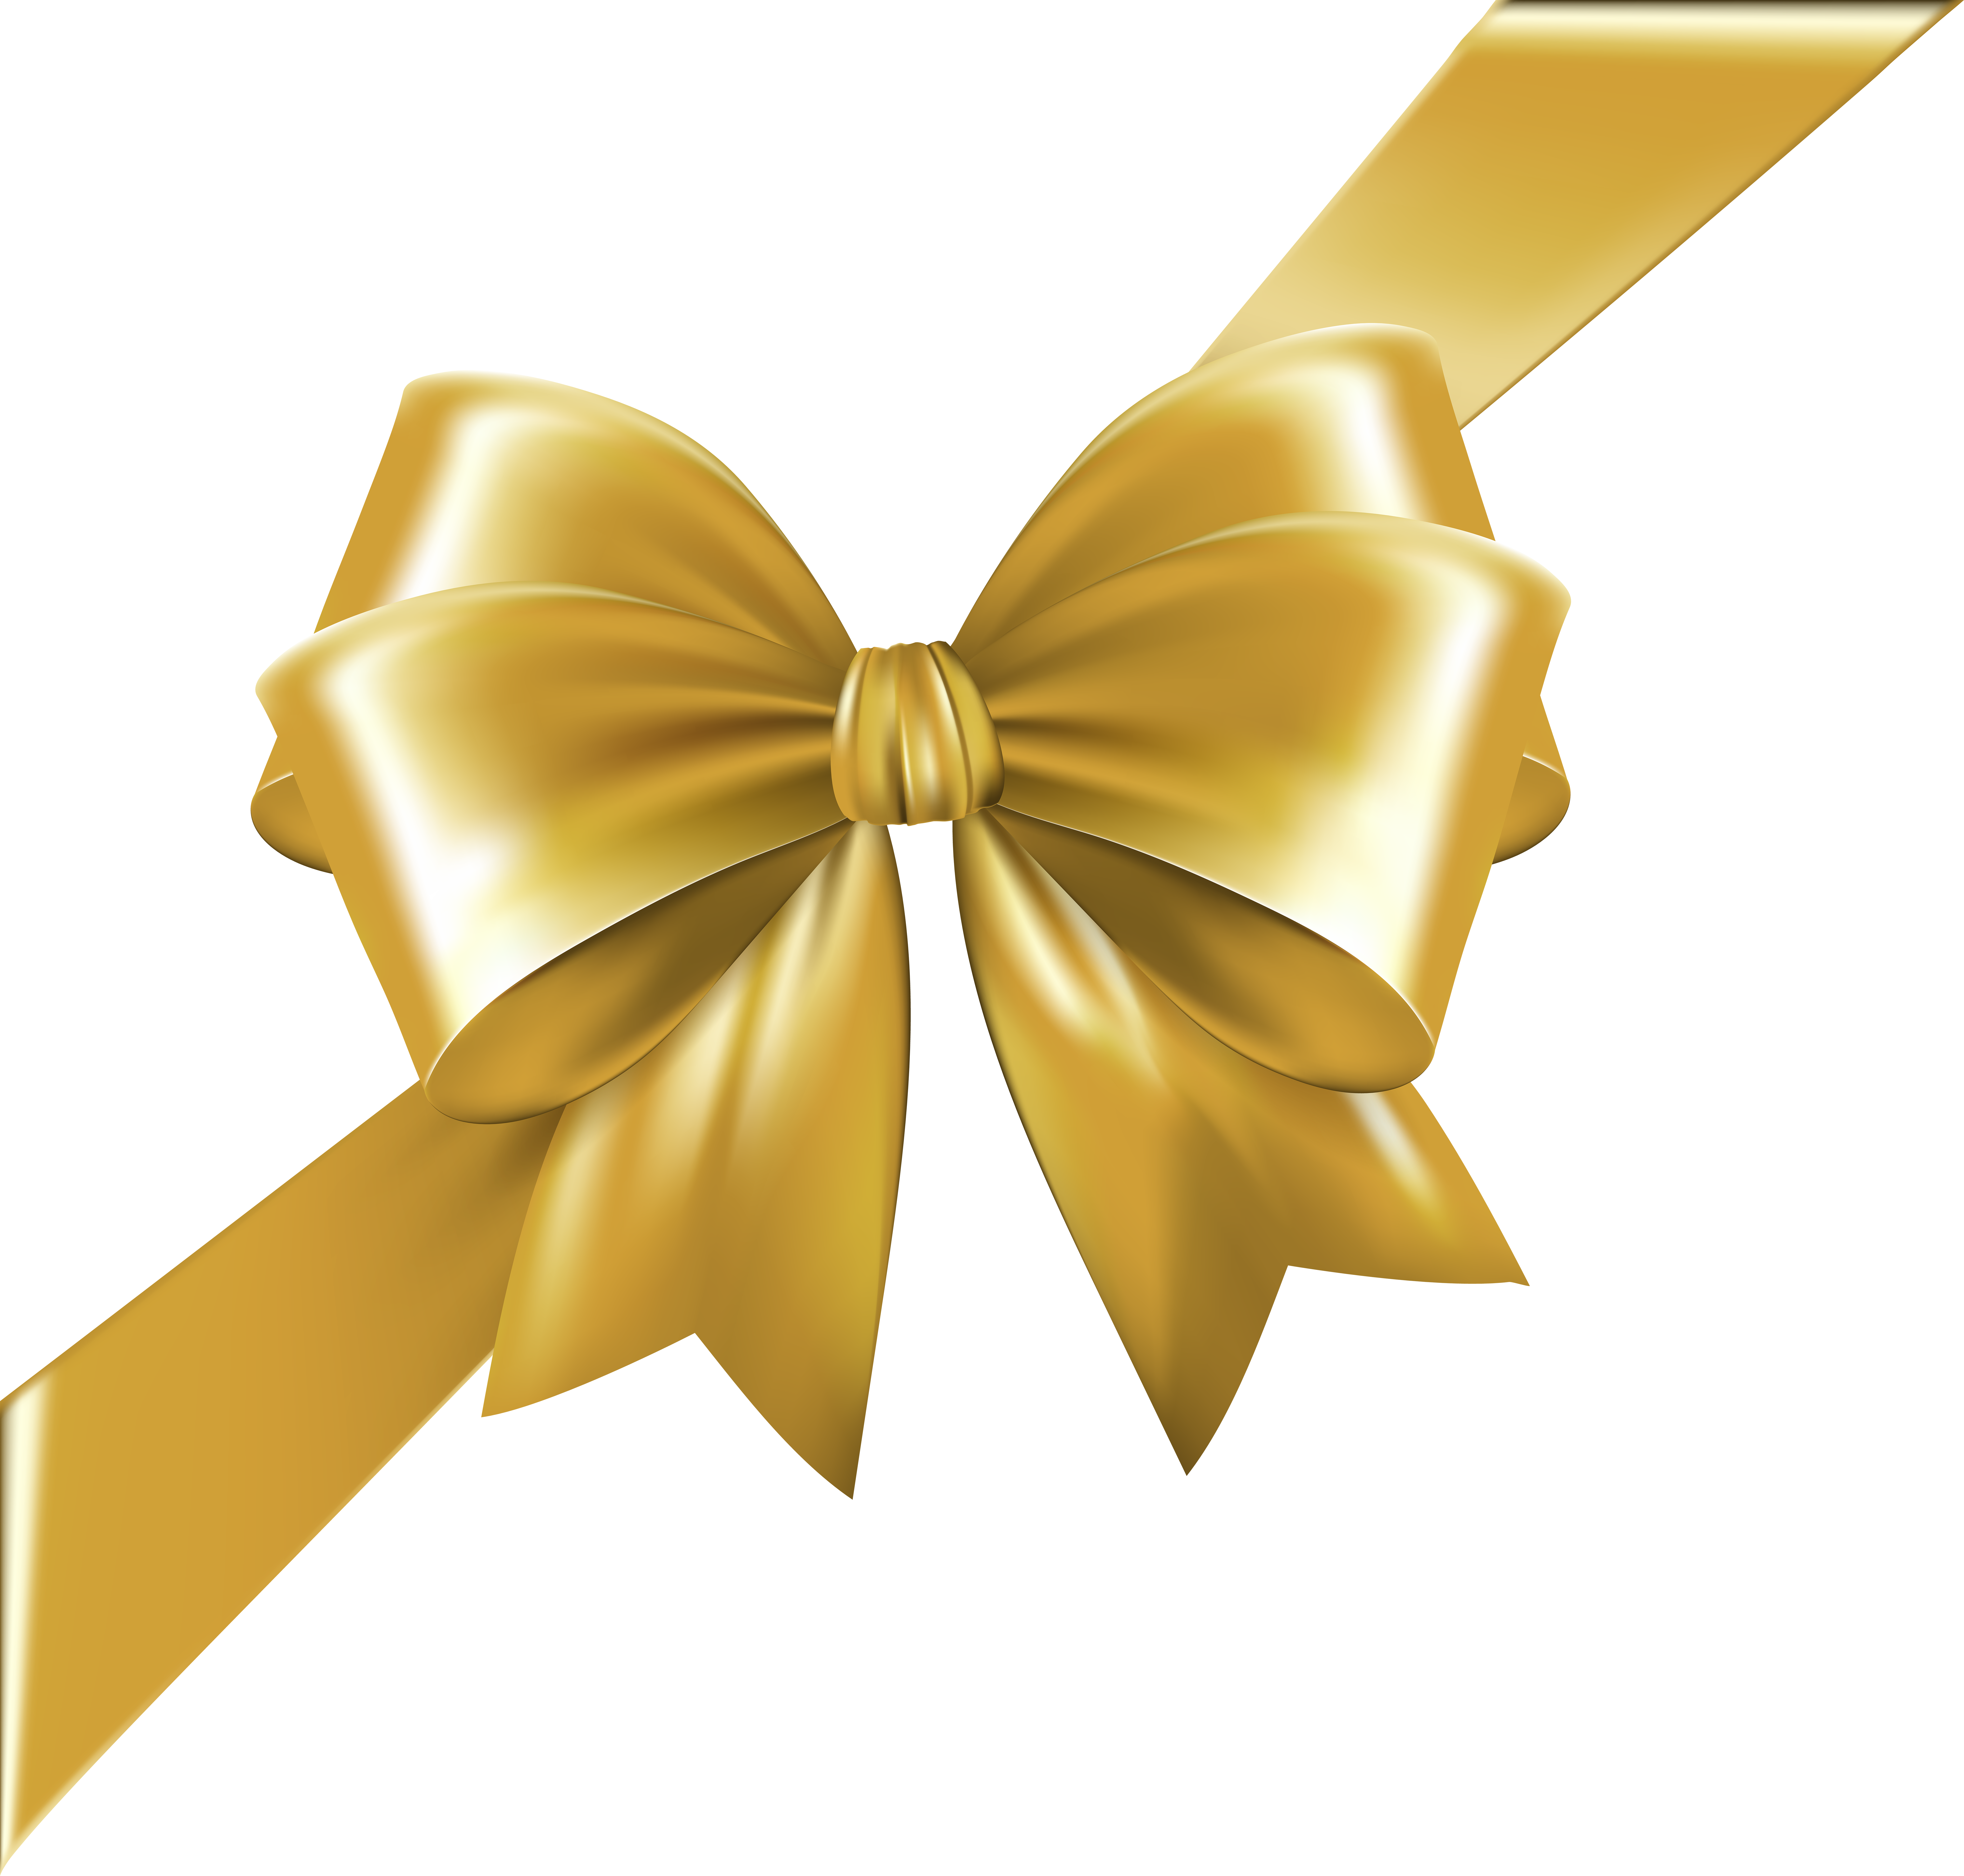 With ribbon gold transparent. Clipart bow corner